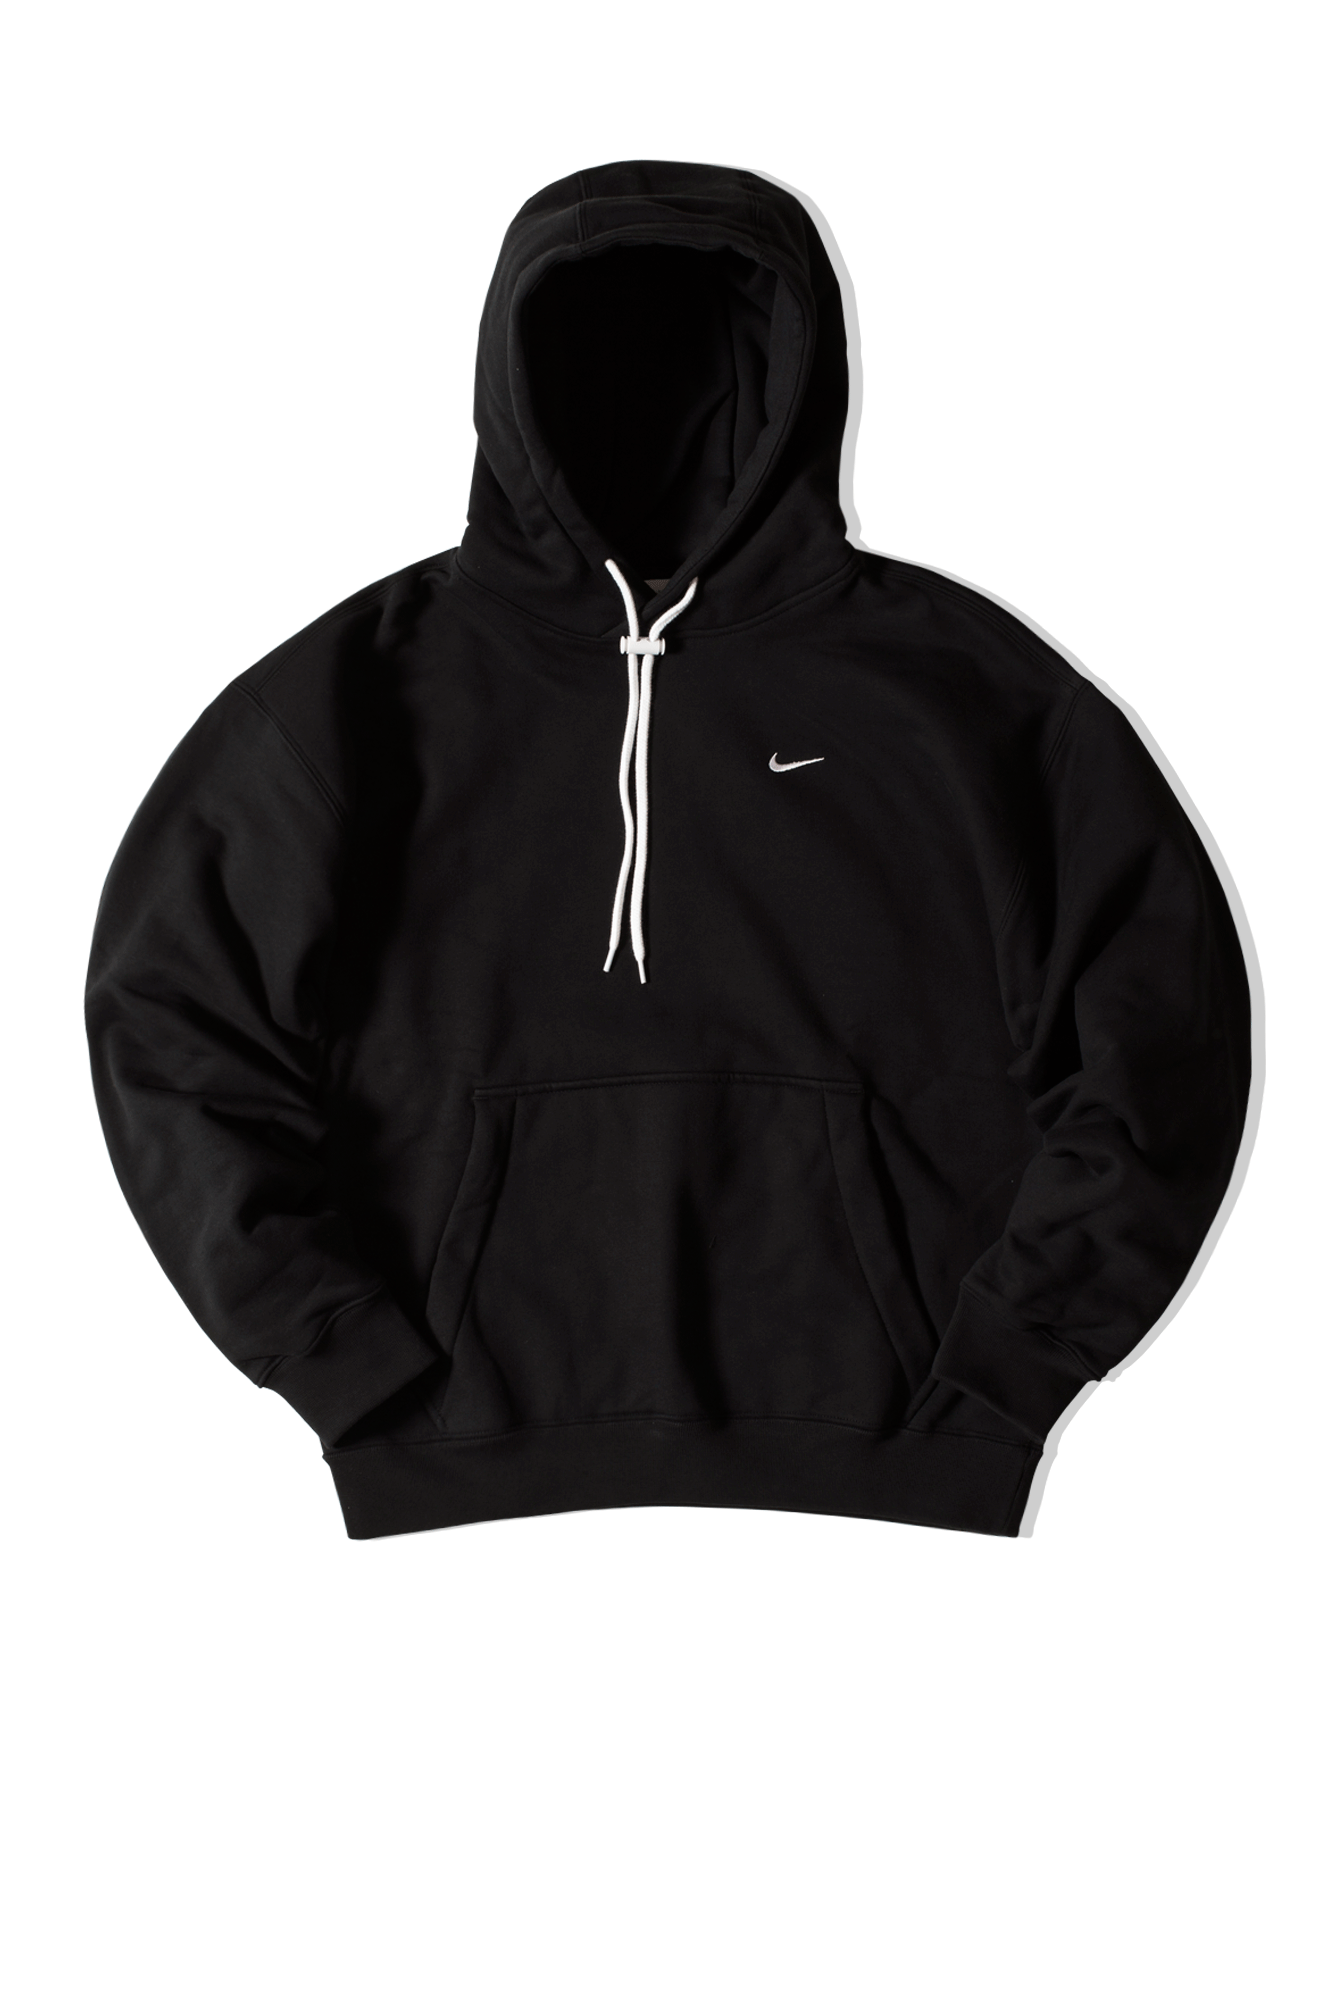 Nike Felpe M NRG Hoodie Nero CD6393-#000#010#S - One Block Down